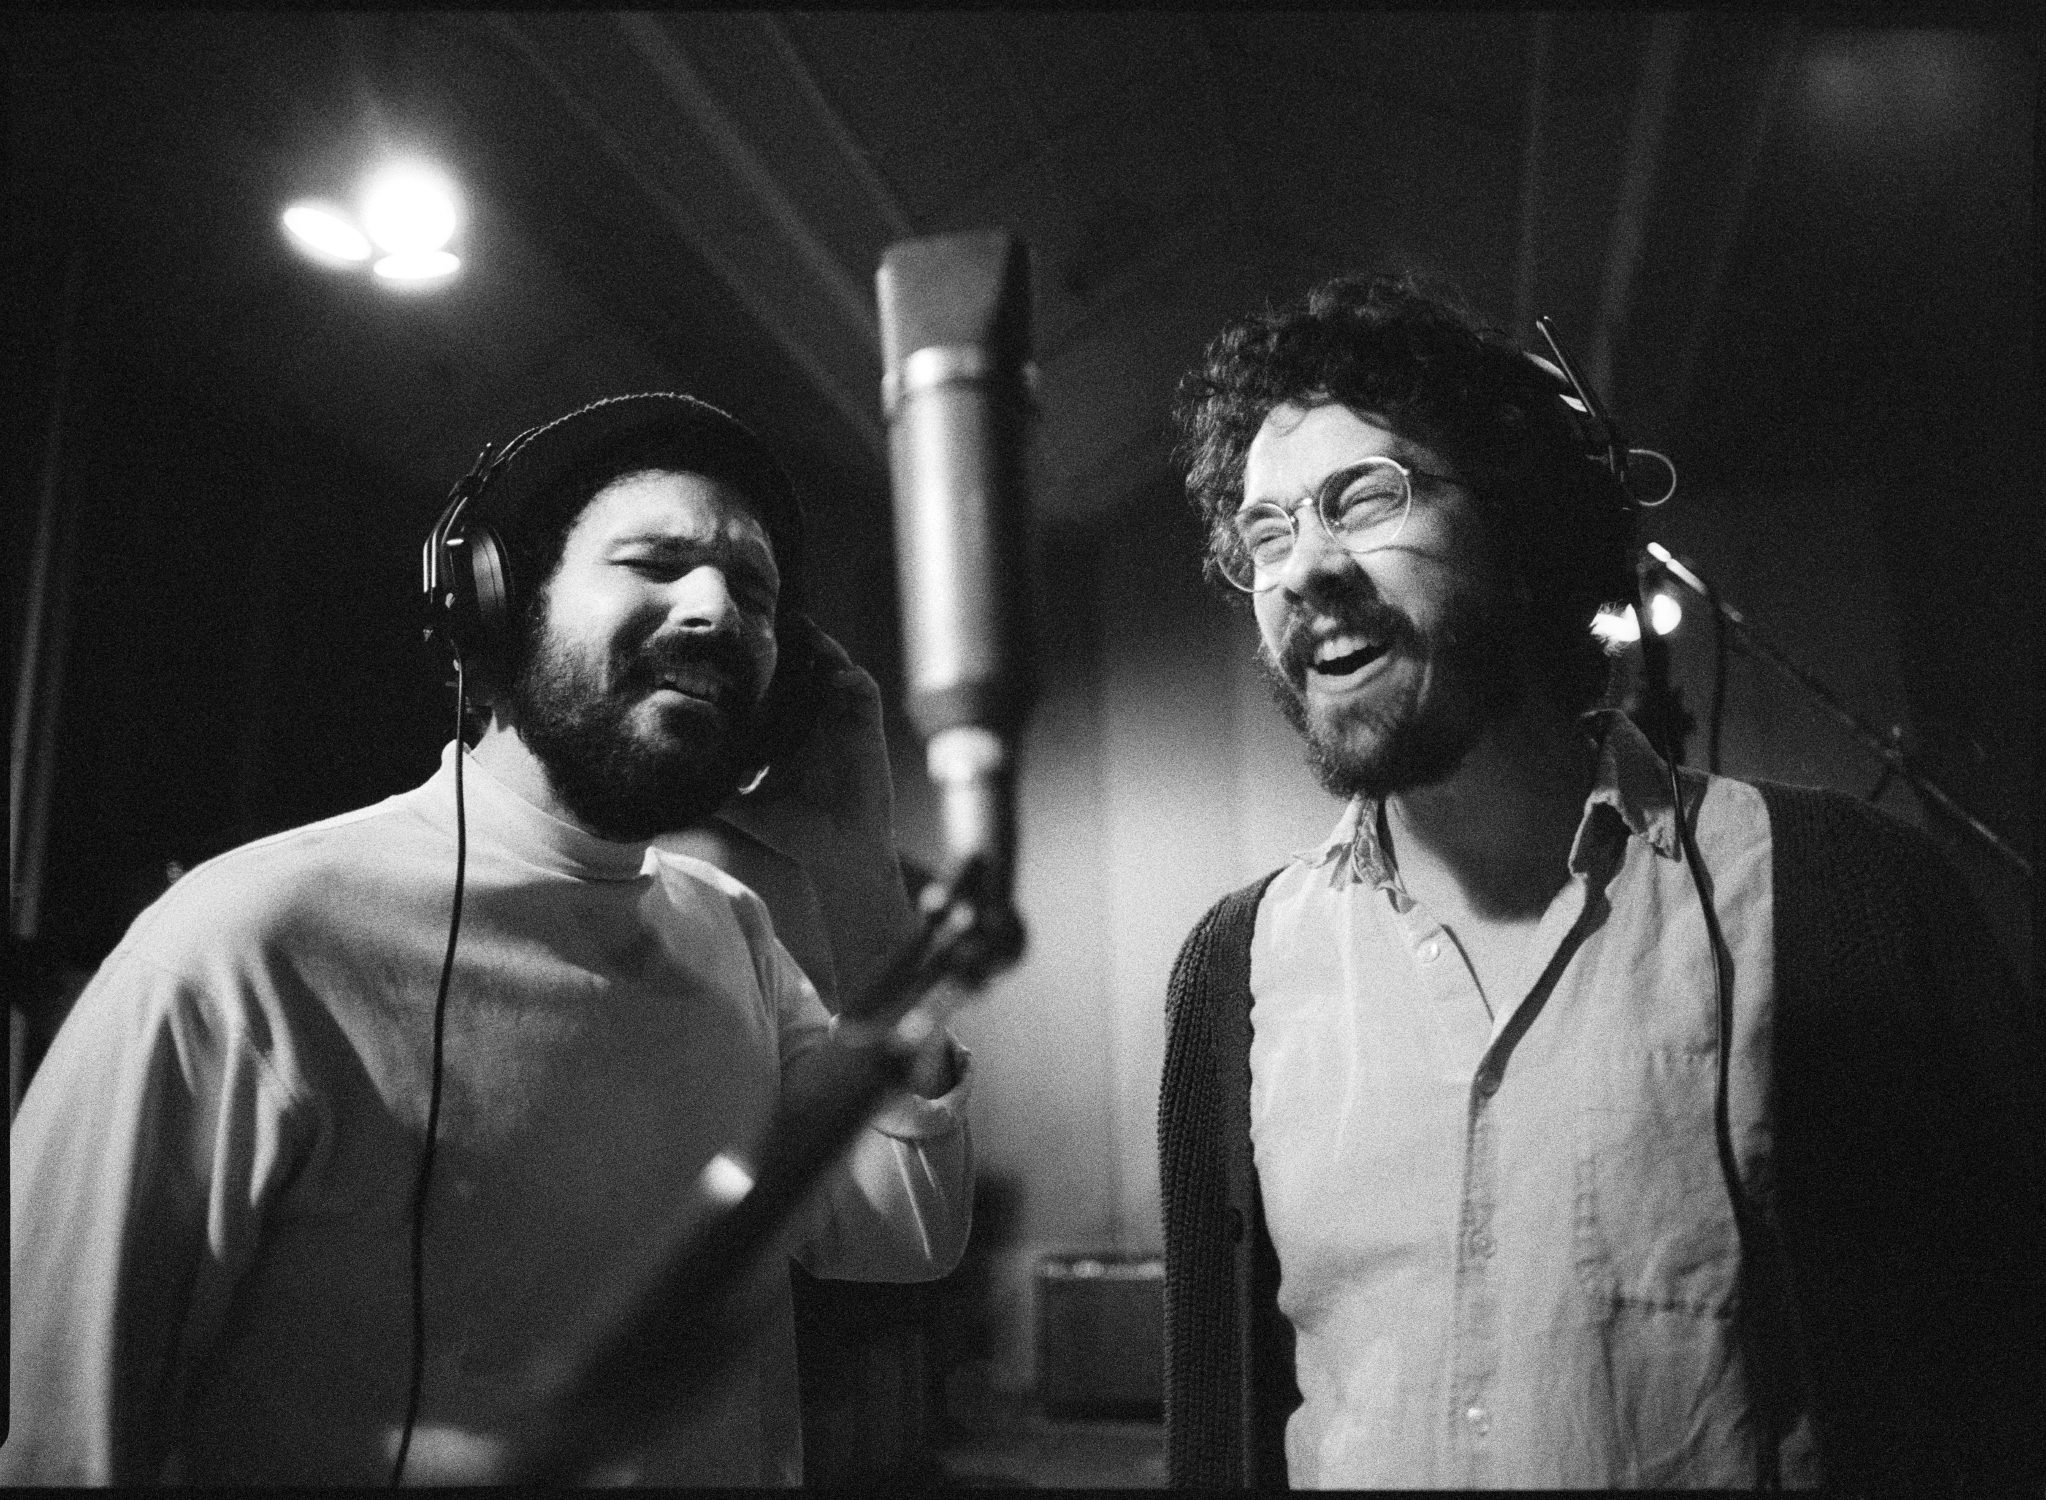 Jerry Bernhardt and Dom Billett tracking backup vocals at Sam Phillips recording in Memphis, TN